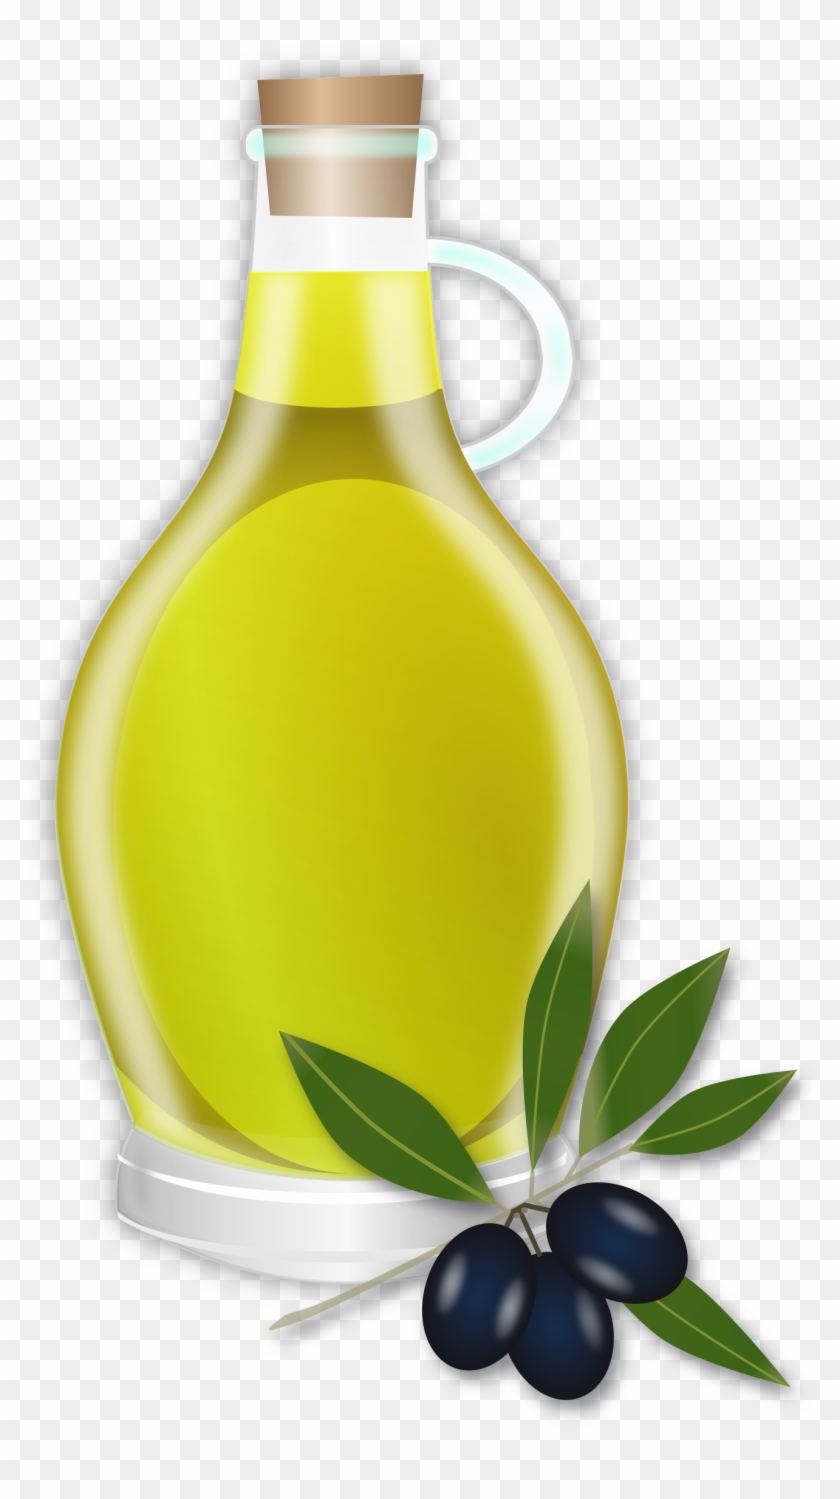 Wine Clipart Oil Pencil And In Color Wine Clipart Oil - Olive Oil Clipart #430850